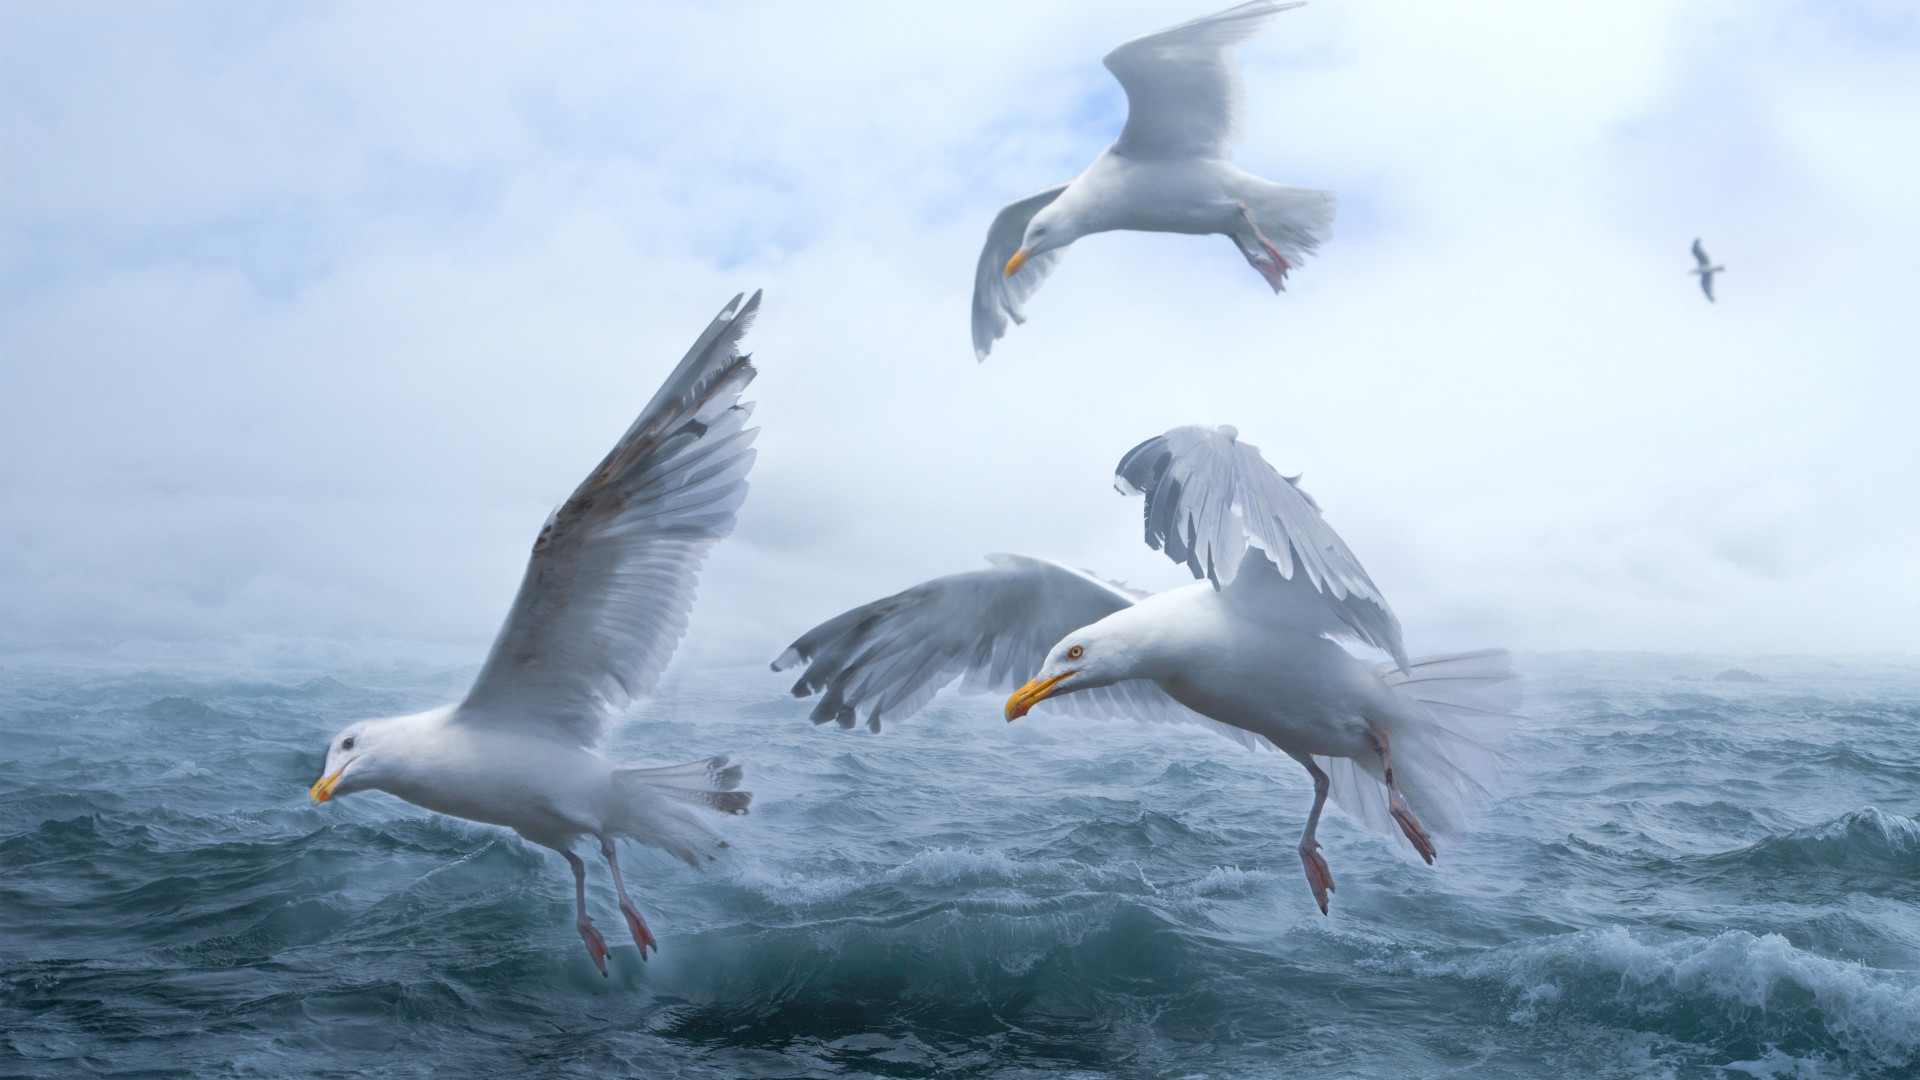 Seagulls above sea waves wallpaper 1920x1080